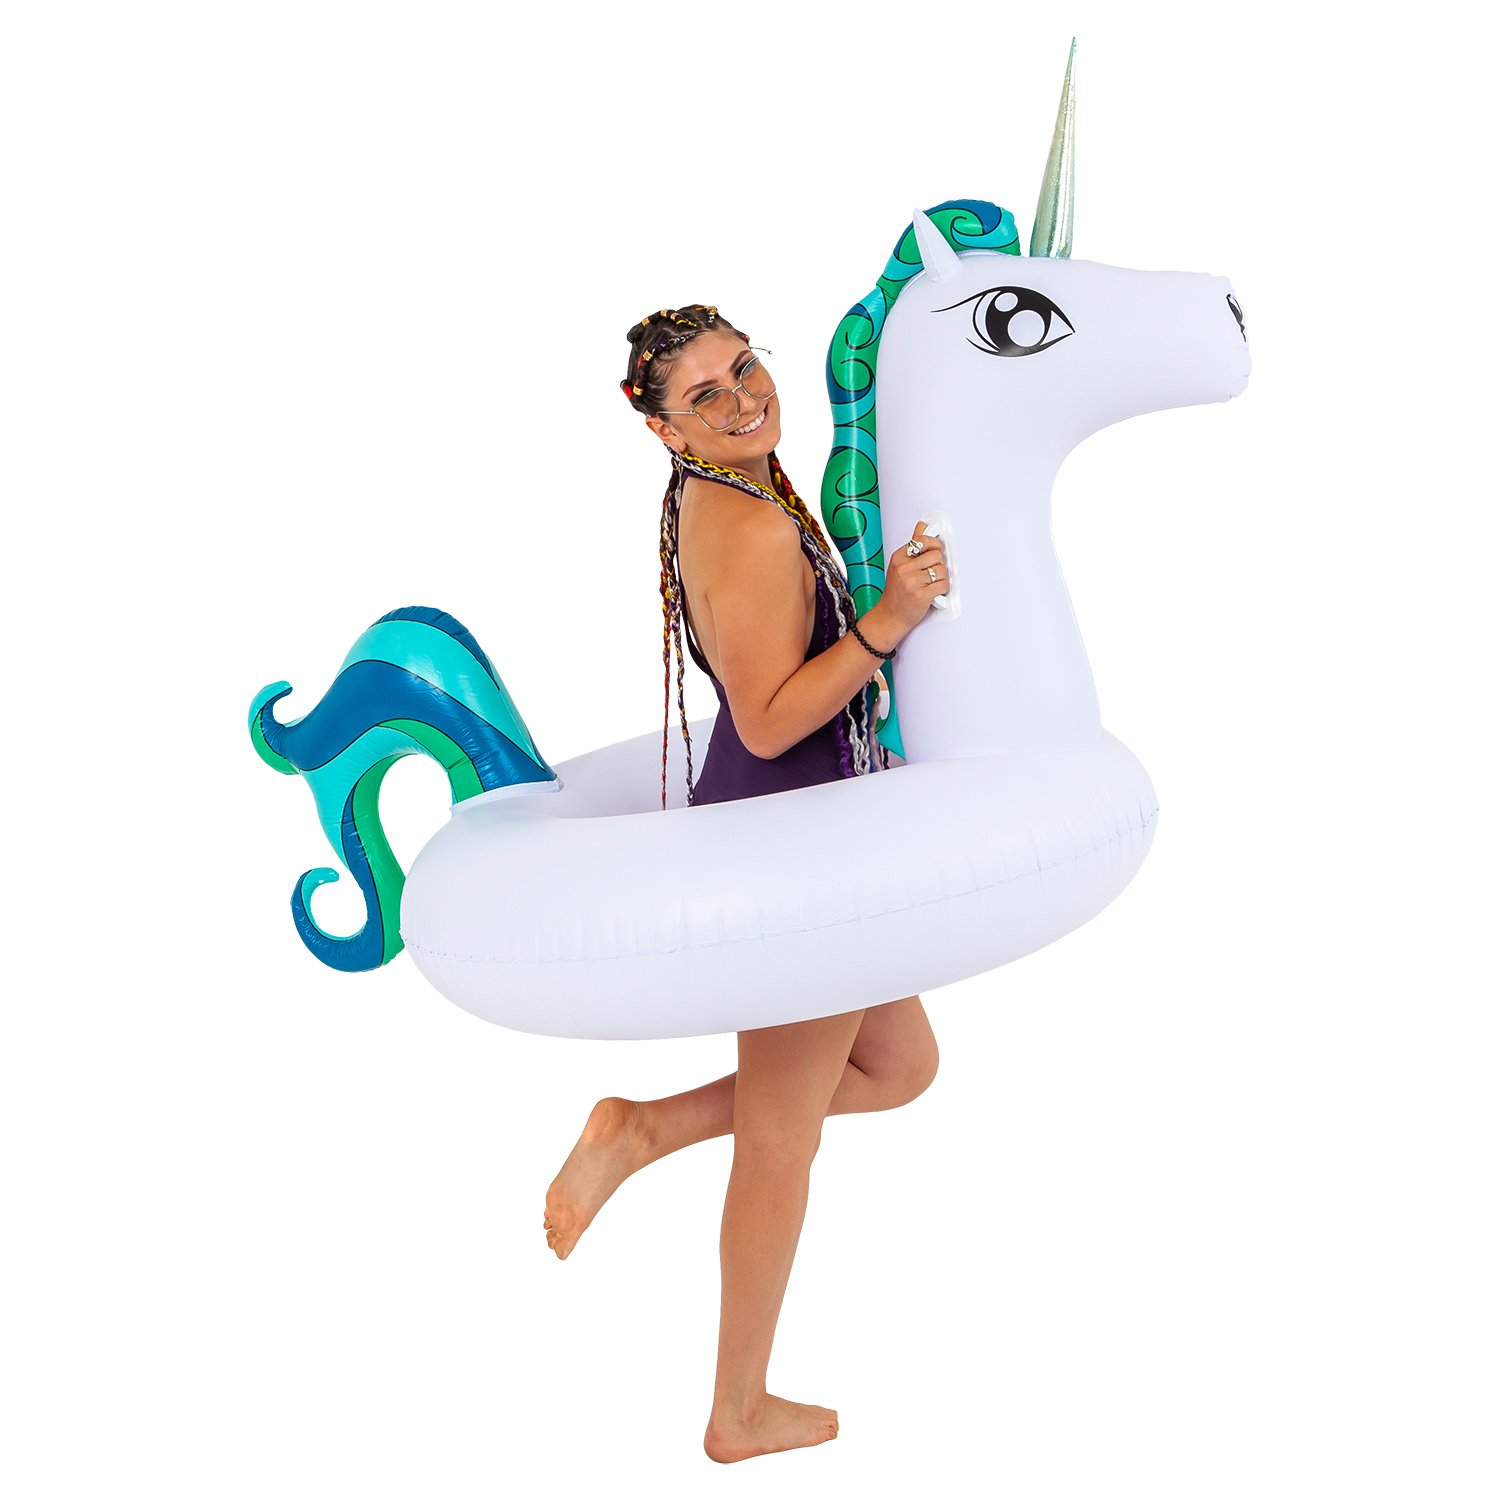 Sundaze Floats Giant 6 Foot Inflatable Tropical Unicorn Pool Ring Tube Float - Fun Kids Swim Party Toy - Summer Lounge Raft